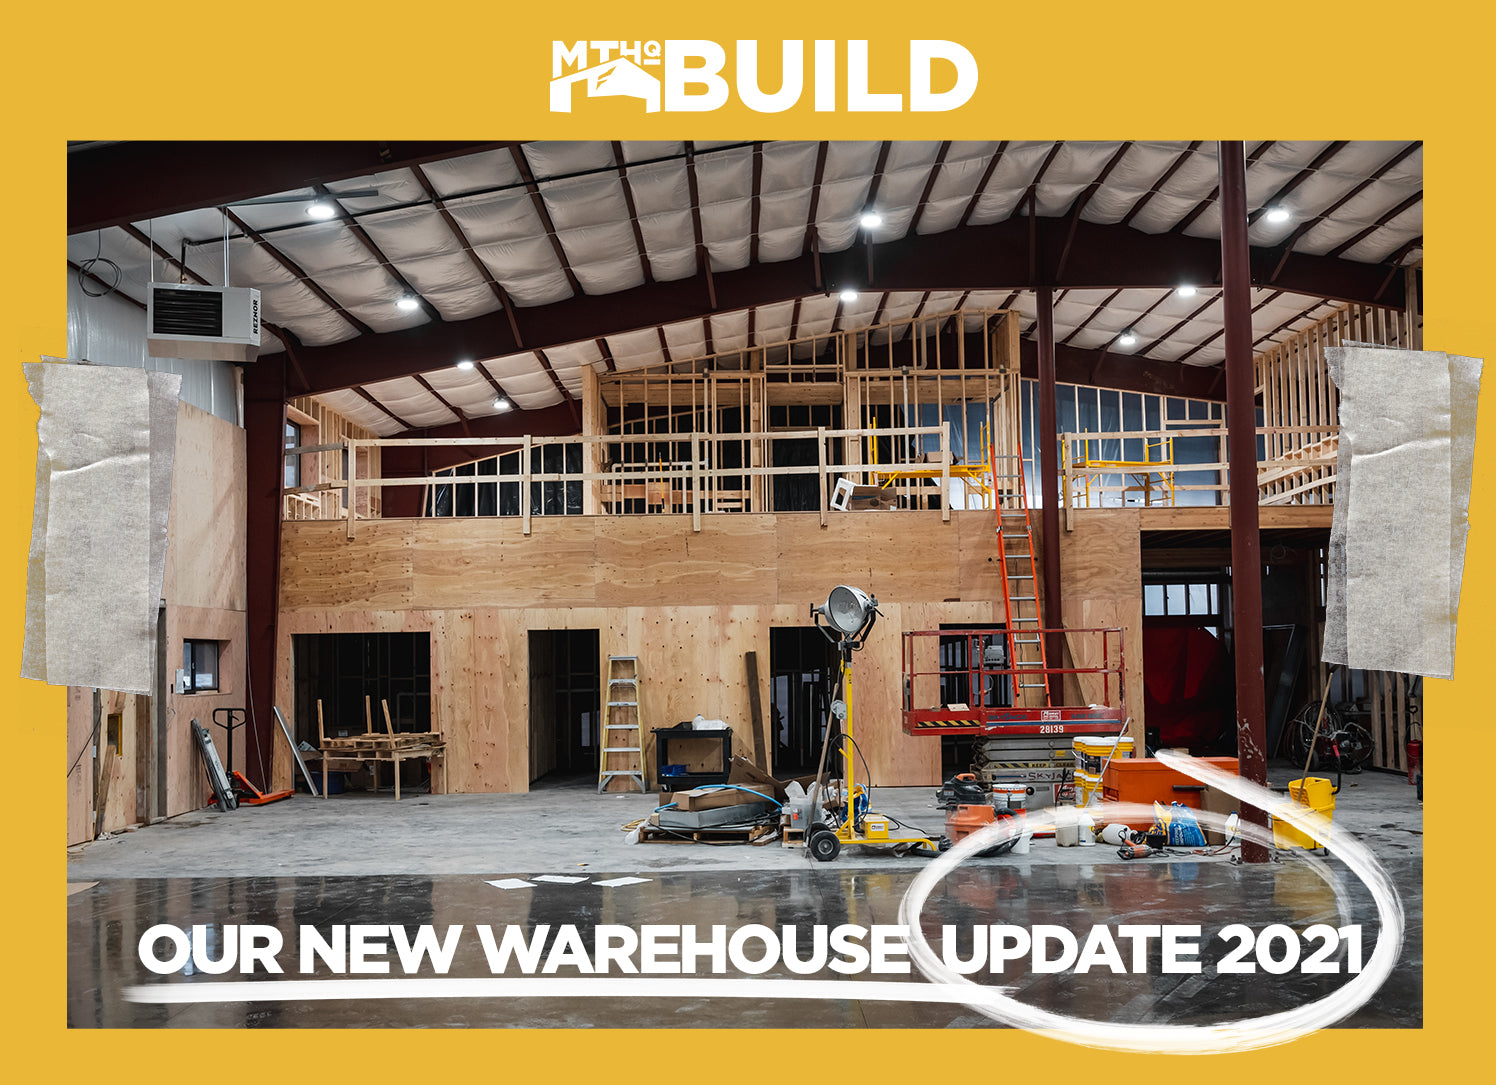 OUR NEW WAREHOUSE | 2021 UPDATE